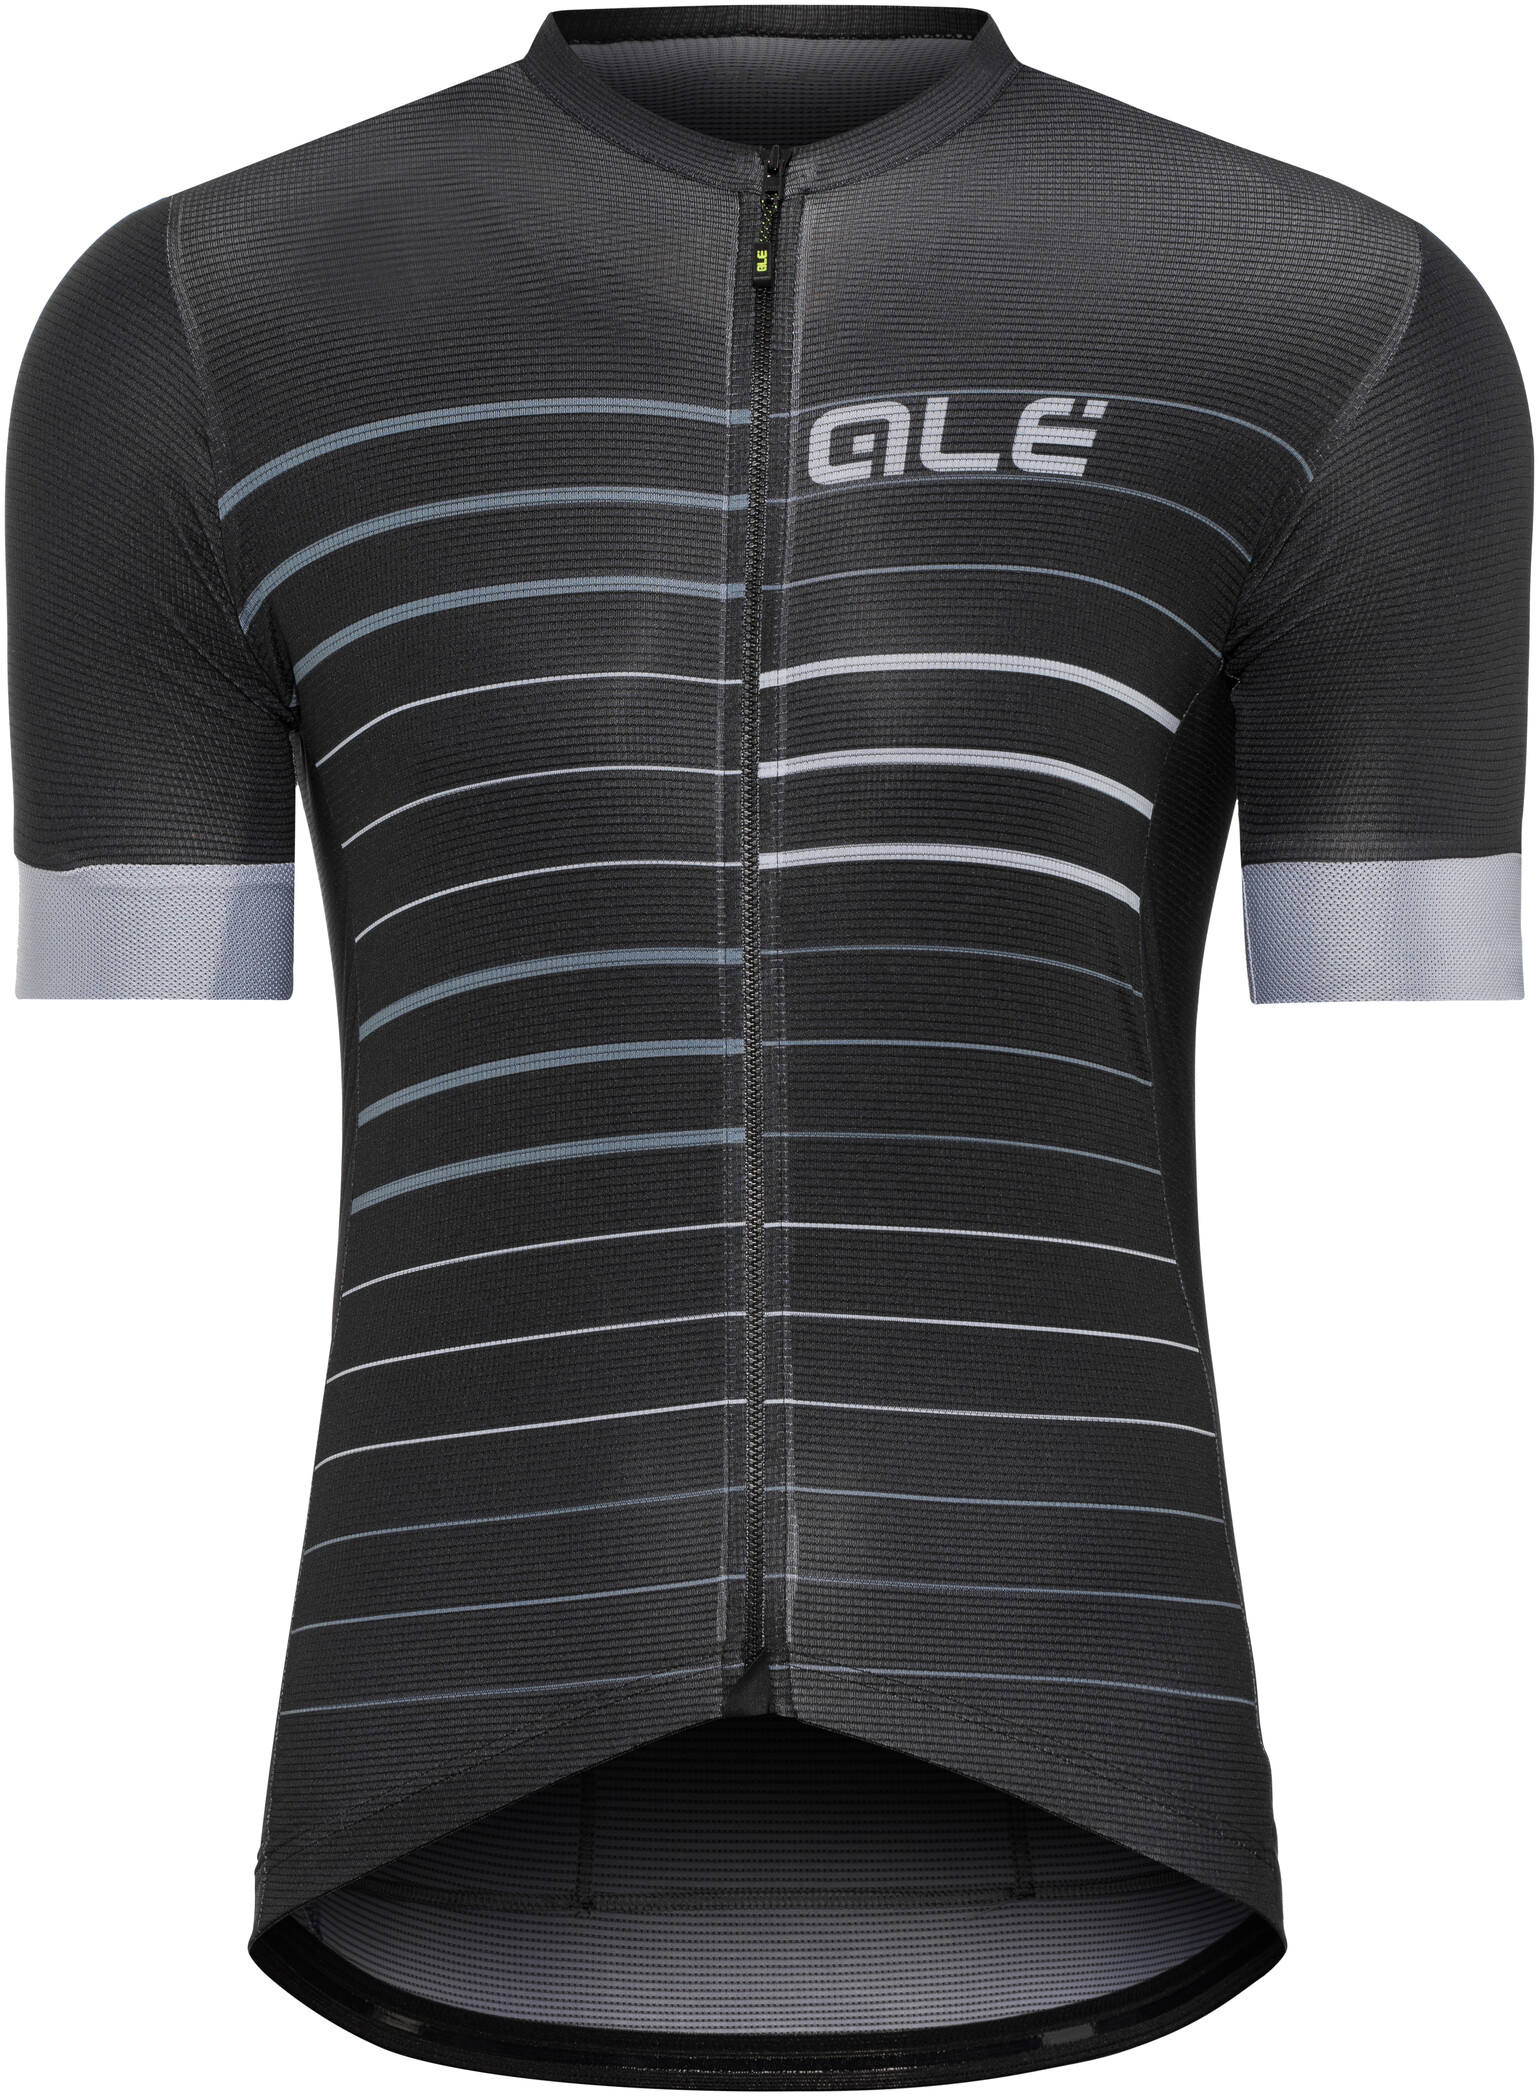 Ale Solid Ergo jersey - Blue green | Jerseys